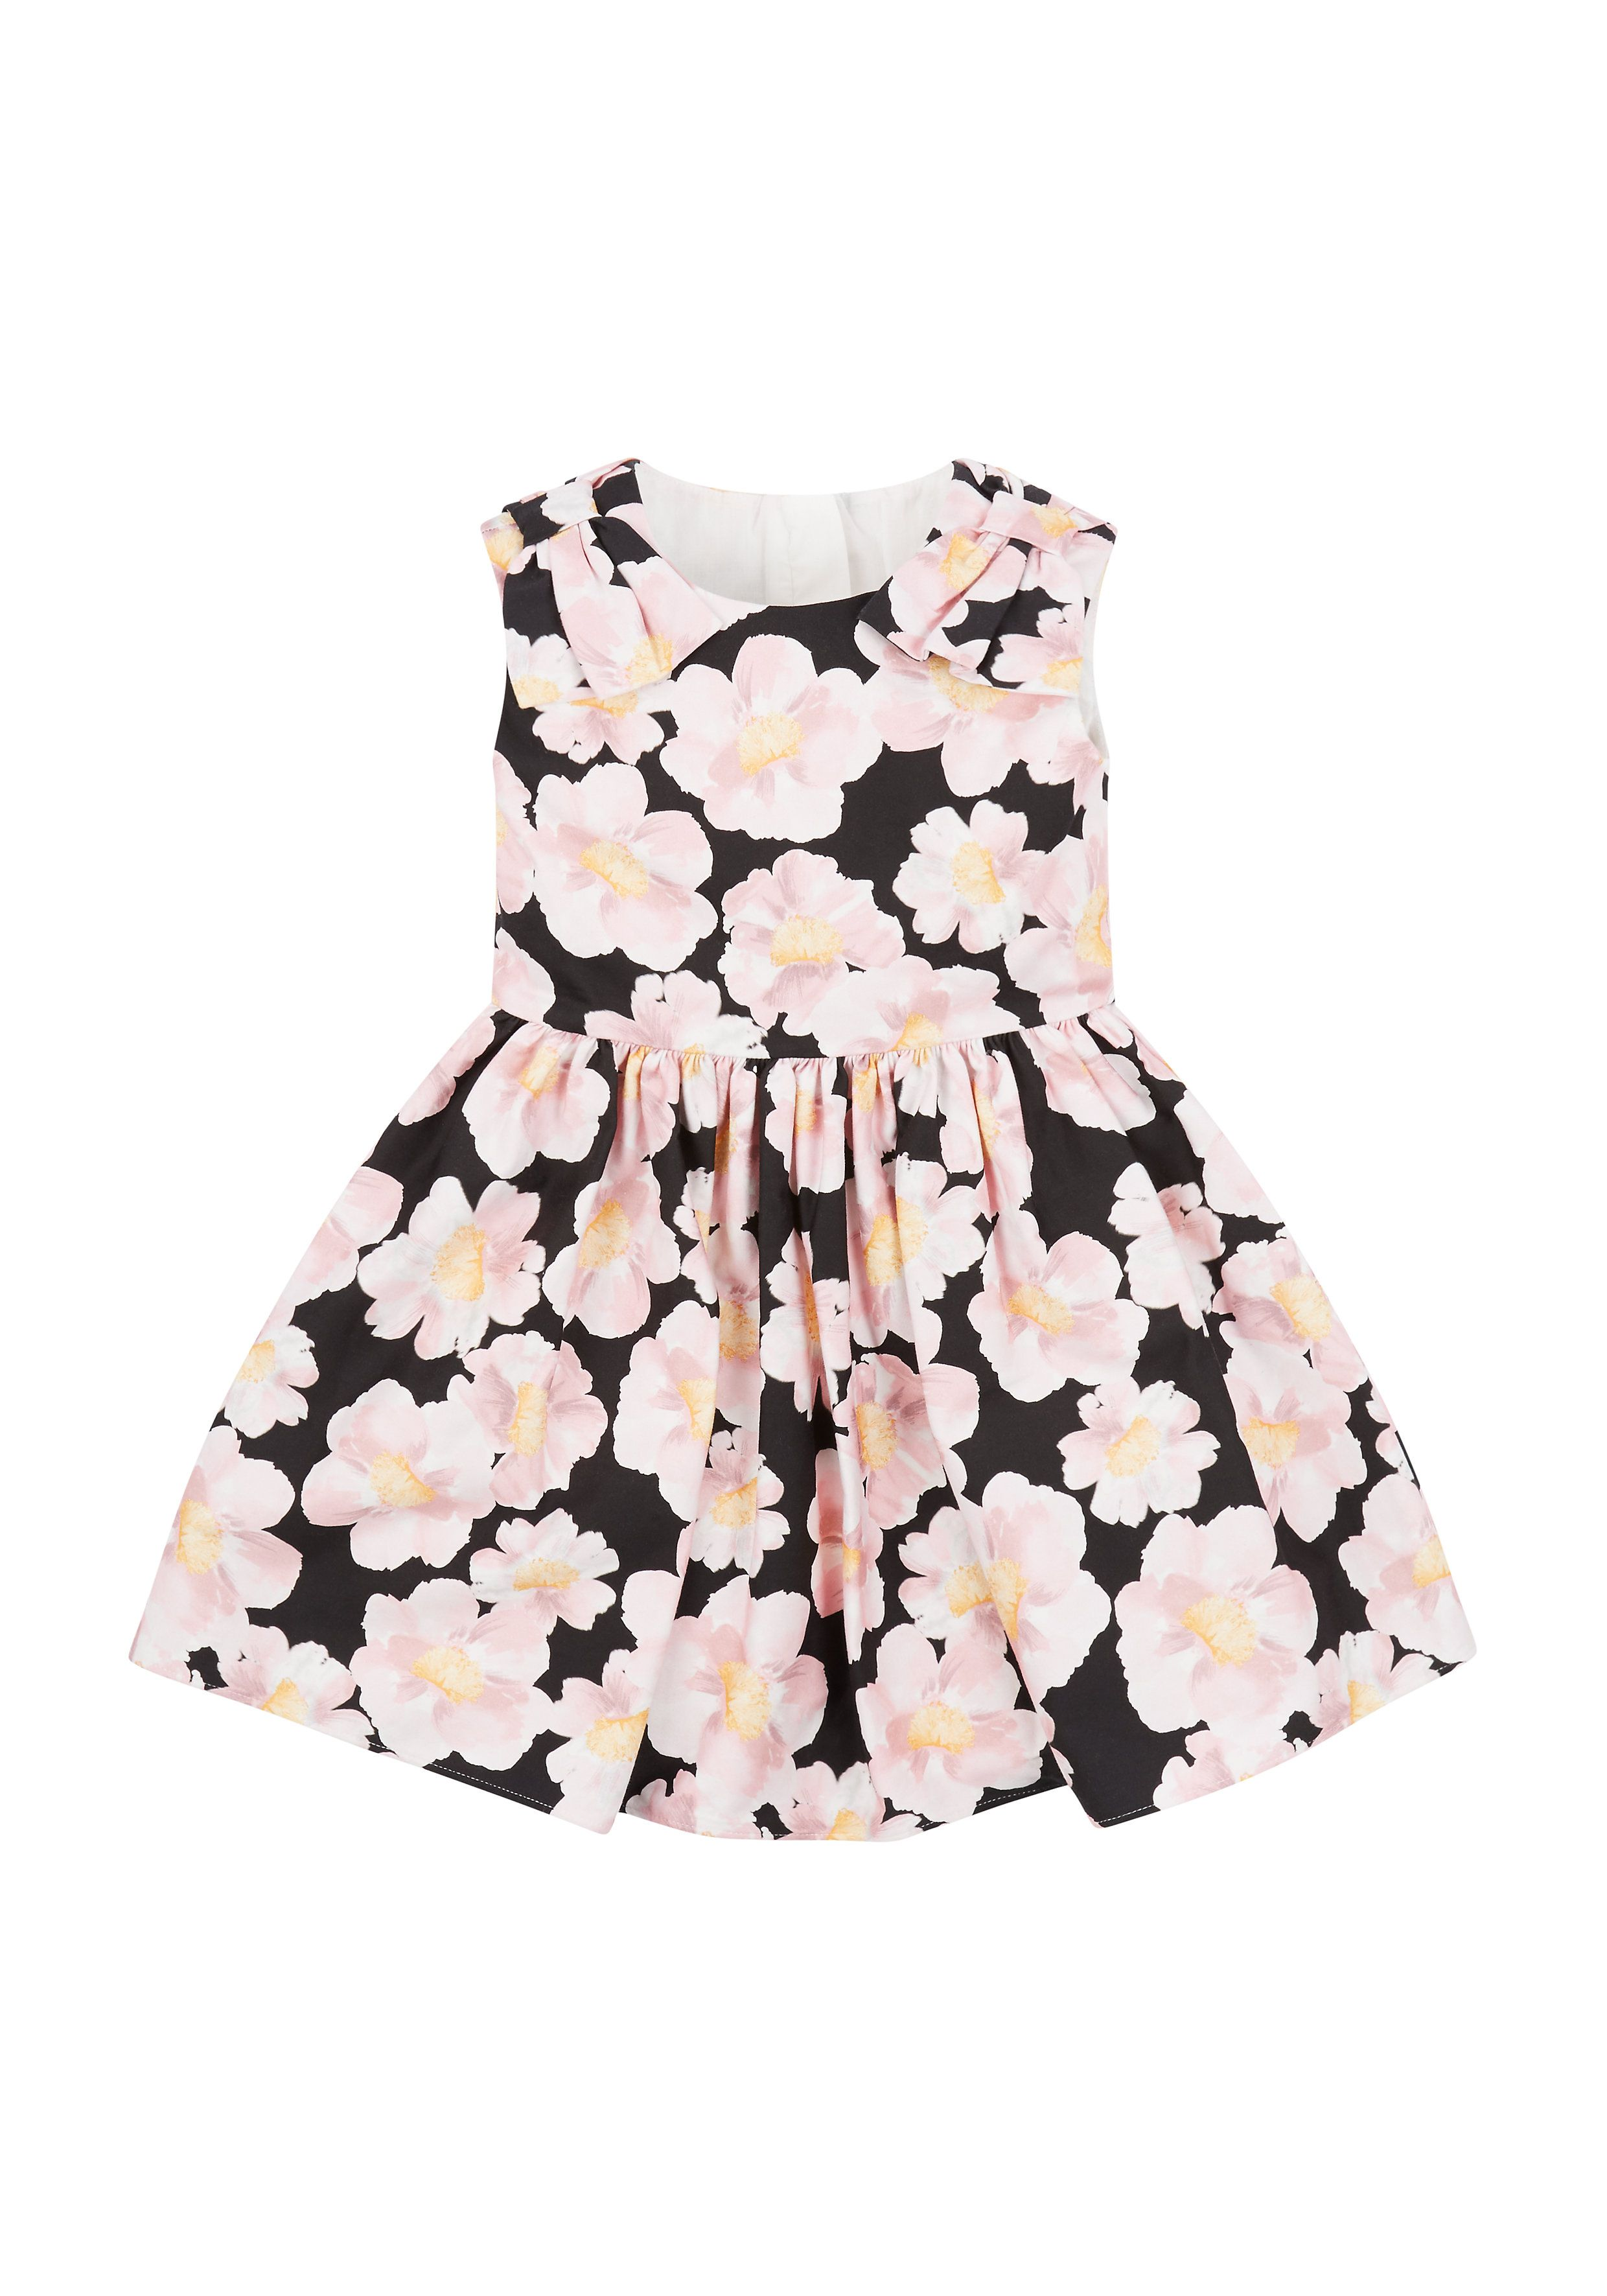 Mothercare | Mothercare Lace Party Dress